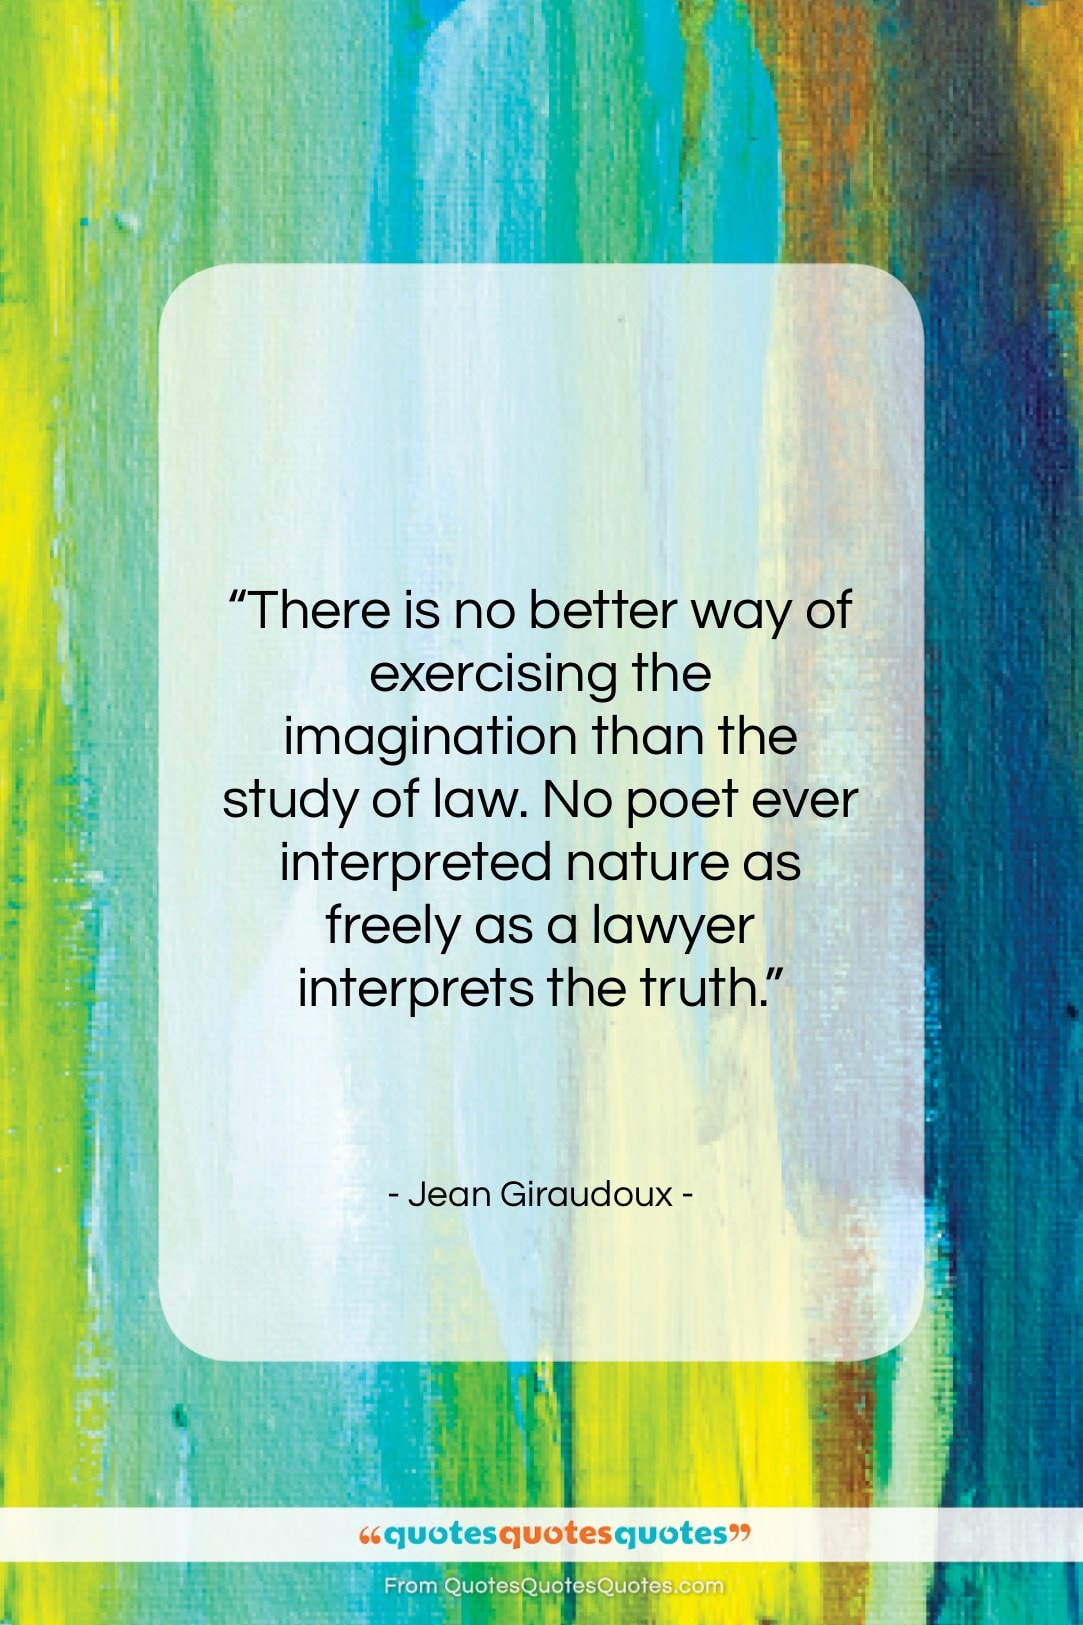 """Jean Giraudoux quote: """"There is no better way of exercising…""""- at QuotesQuotesQuotes.com"""